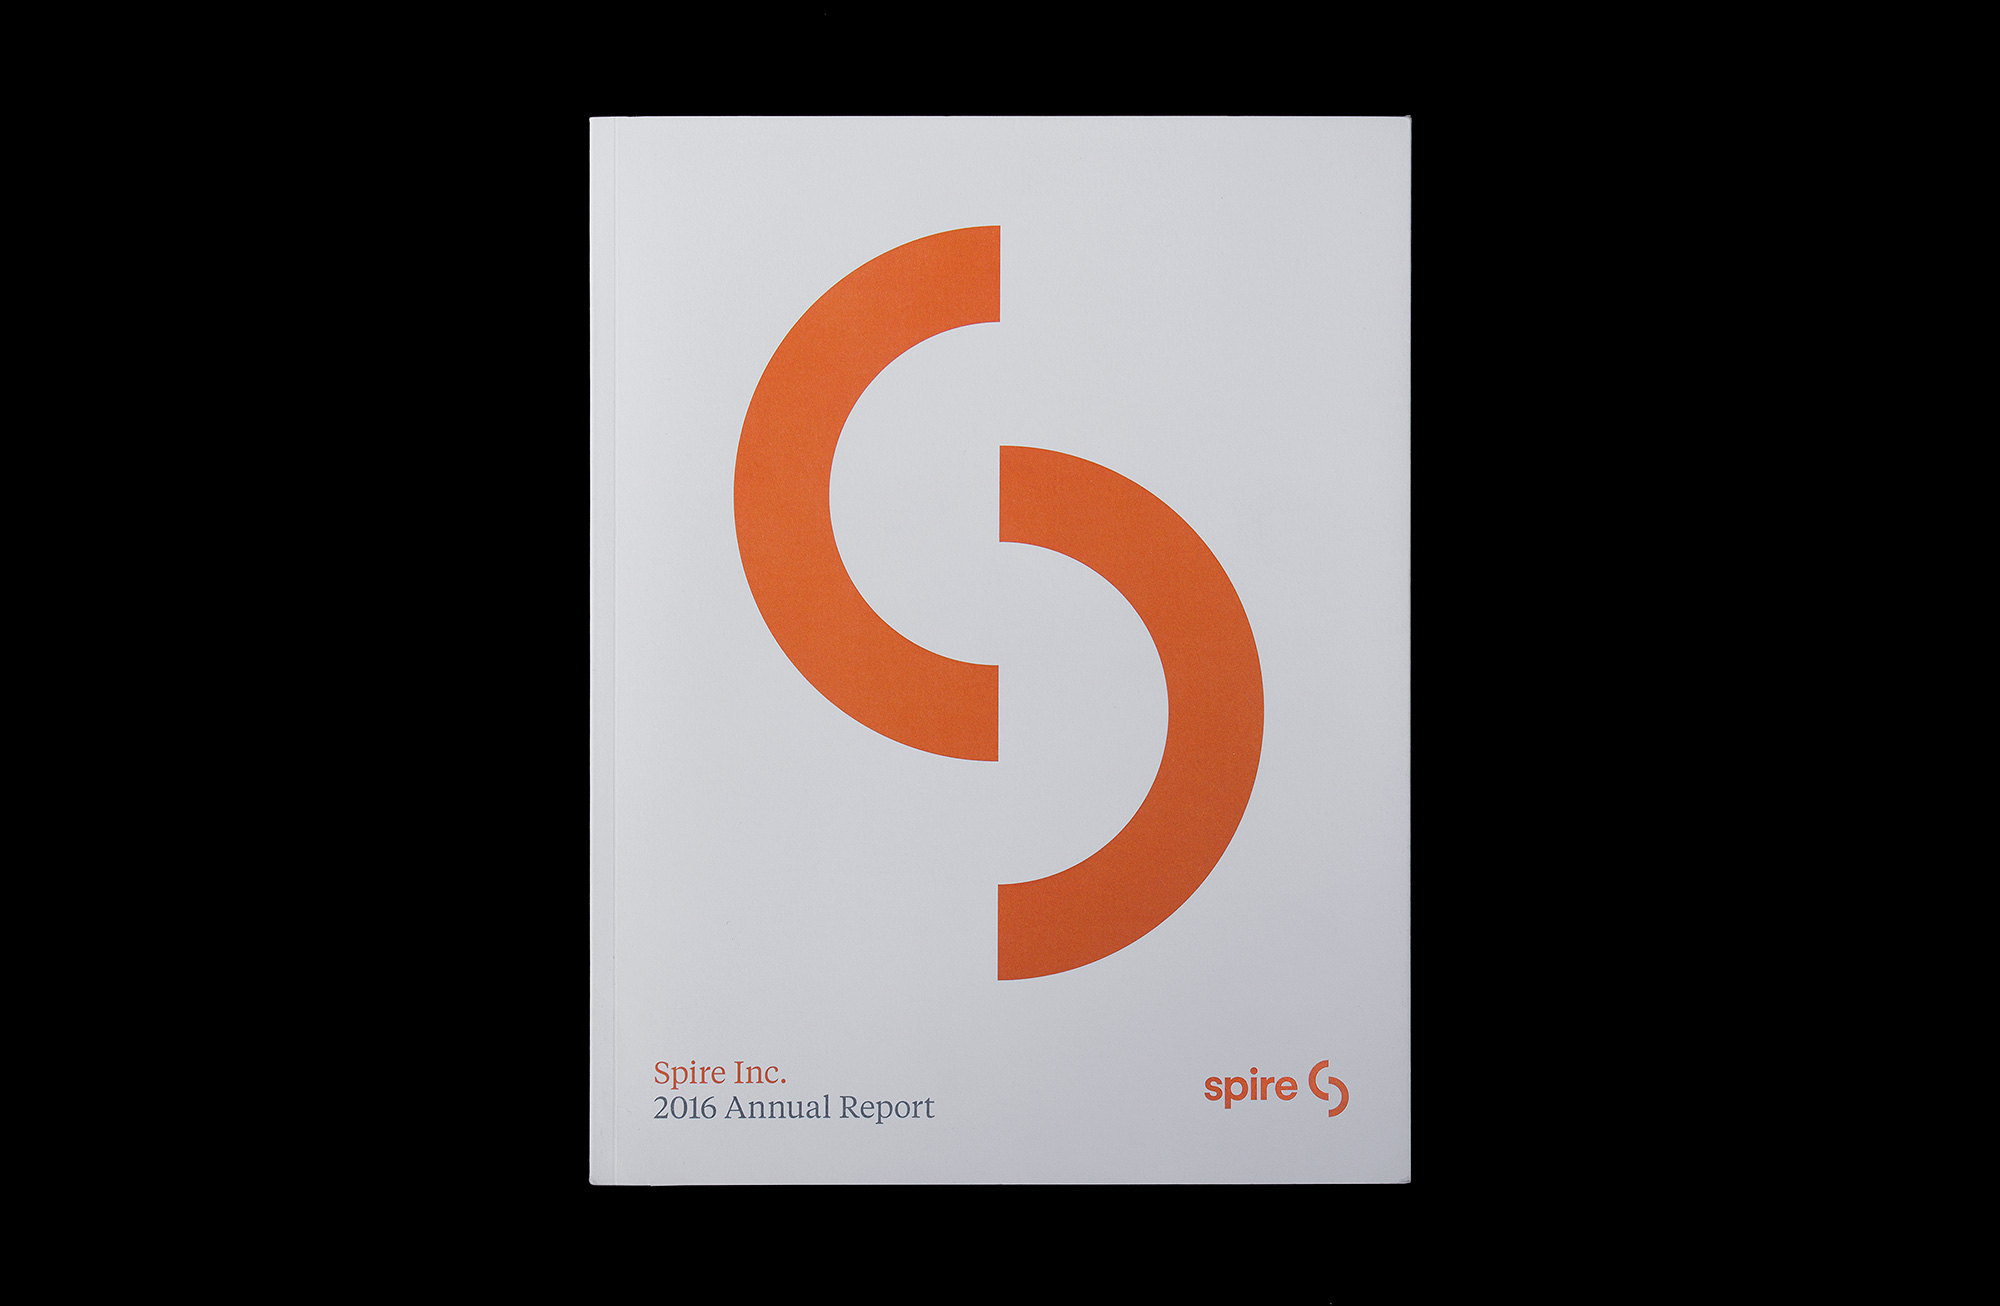 Spire Natural Gas Logo, Matthijs Matt van Leeuwen, Matt King, Mike Knaggs, Spire Annual Report